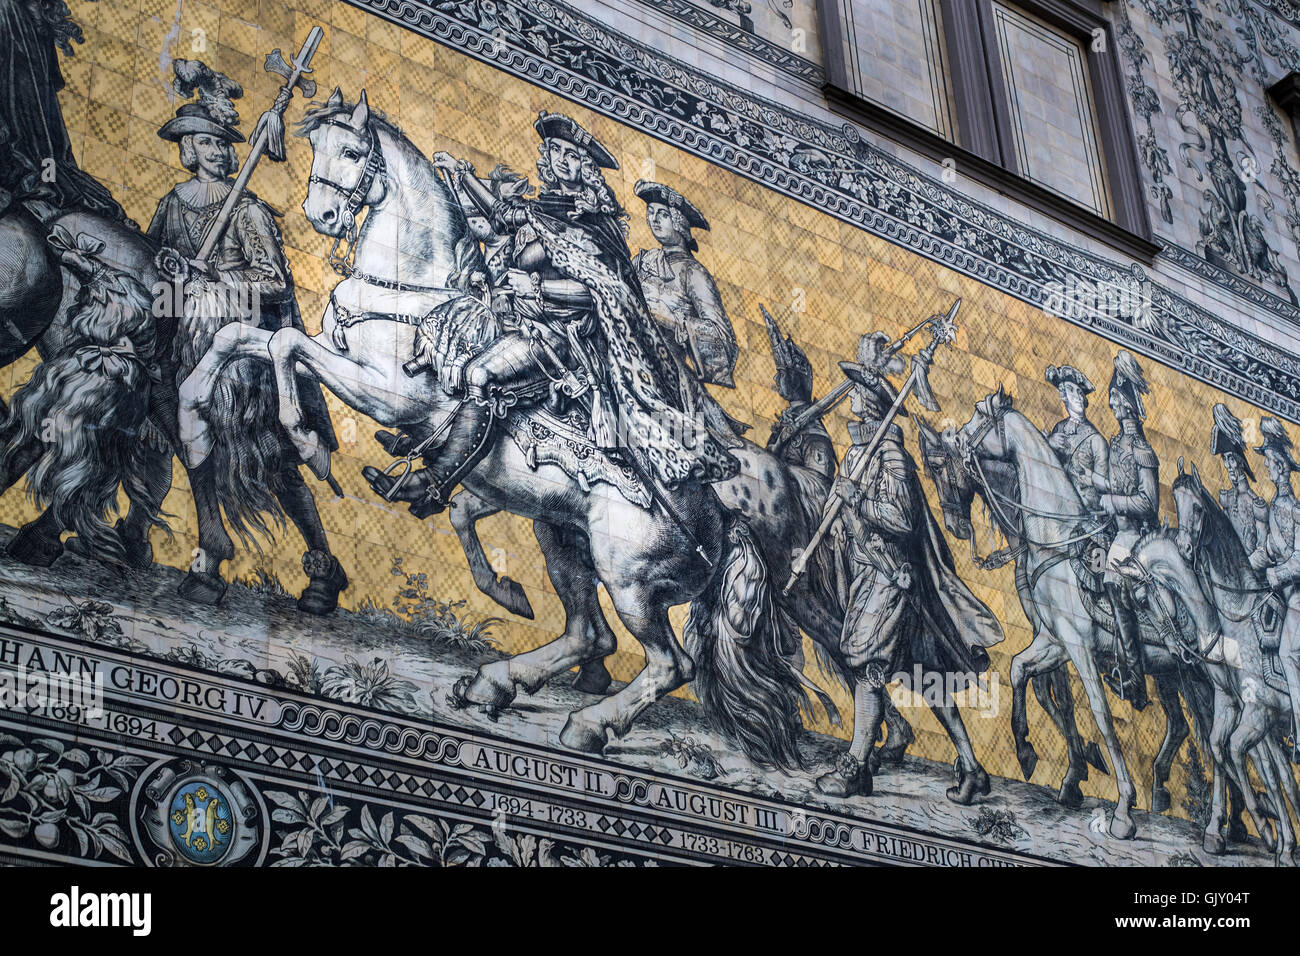 Fürstenzug ('Procession of Princes') mural in Dresden, Germany. August II the Strong (der Starke) in focus. Stock Photo